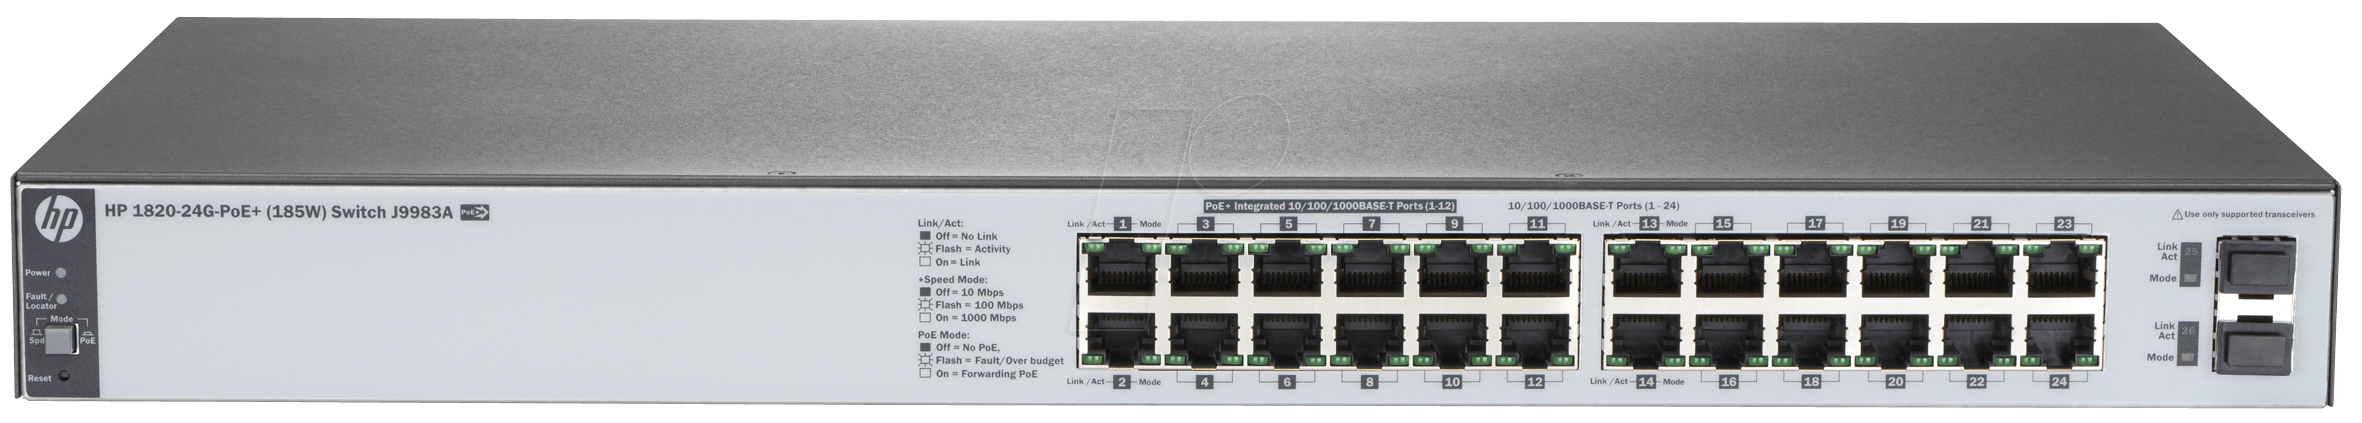 Hp 1820 24gpoe Hp 1820 24g Switch With 24x 10 100